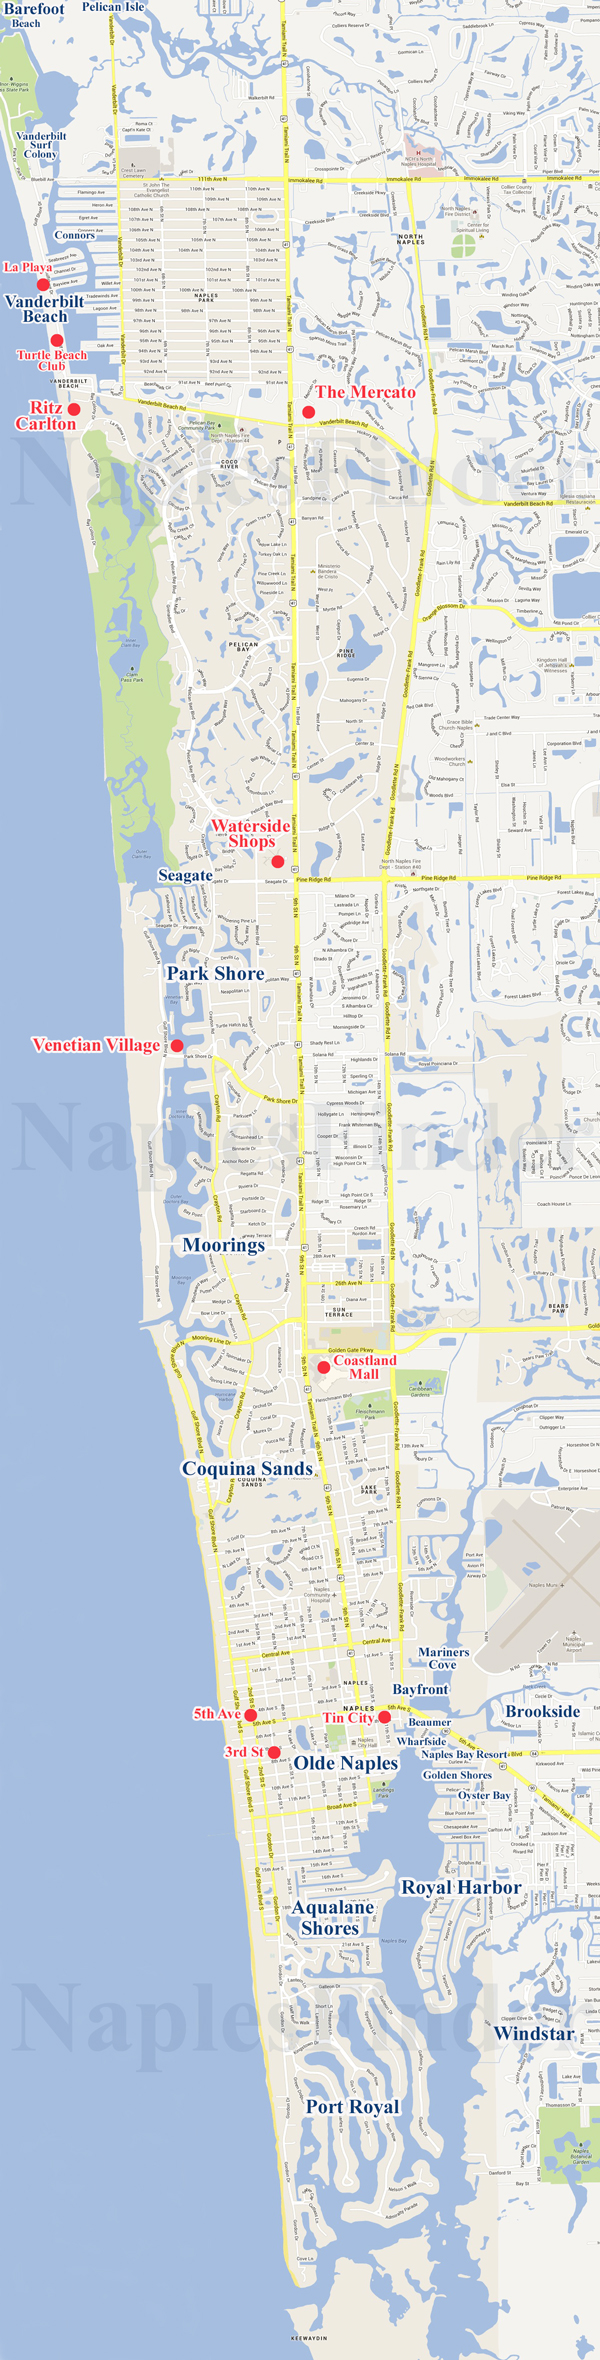 Naples FL Boating Communities